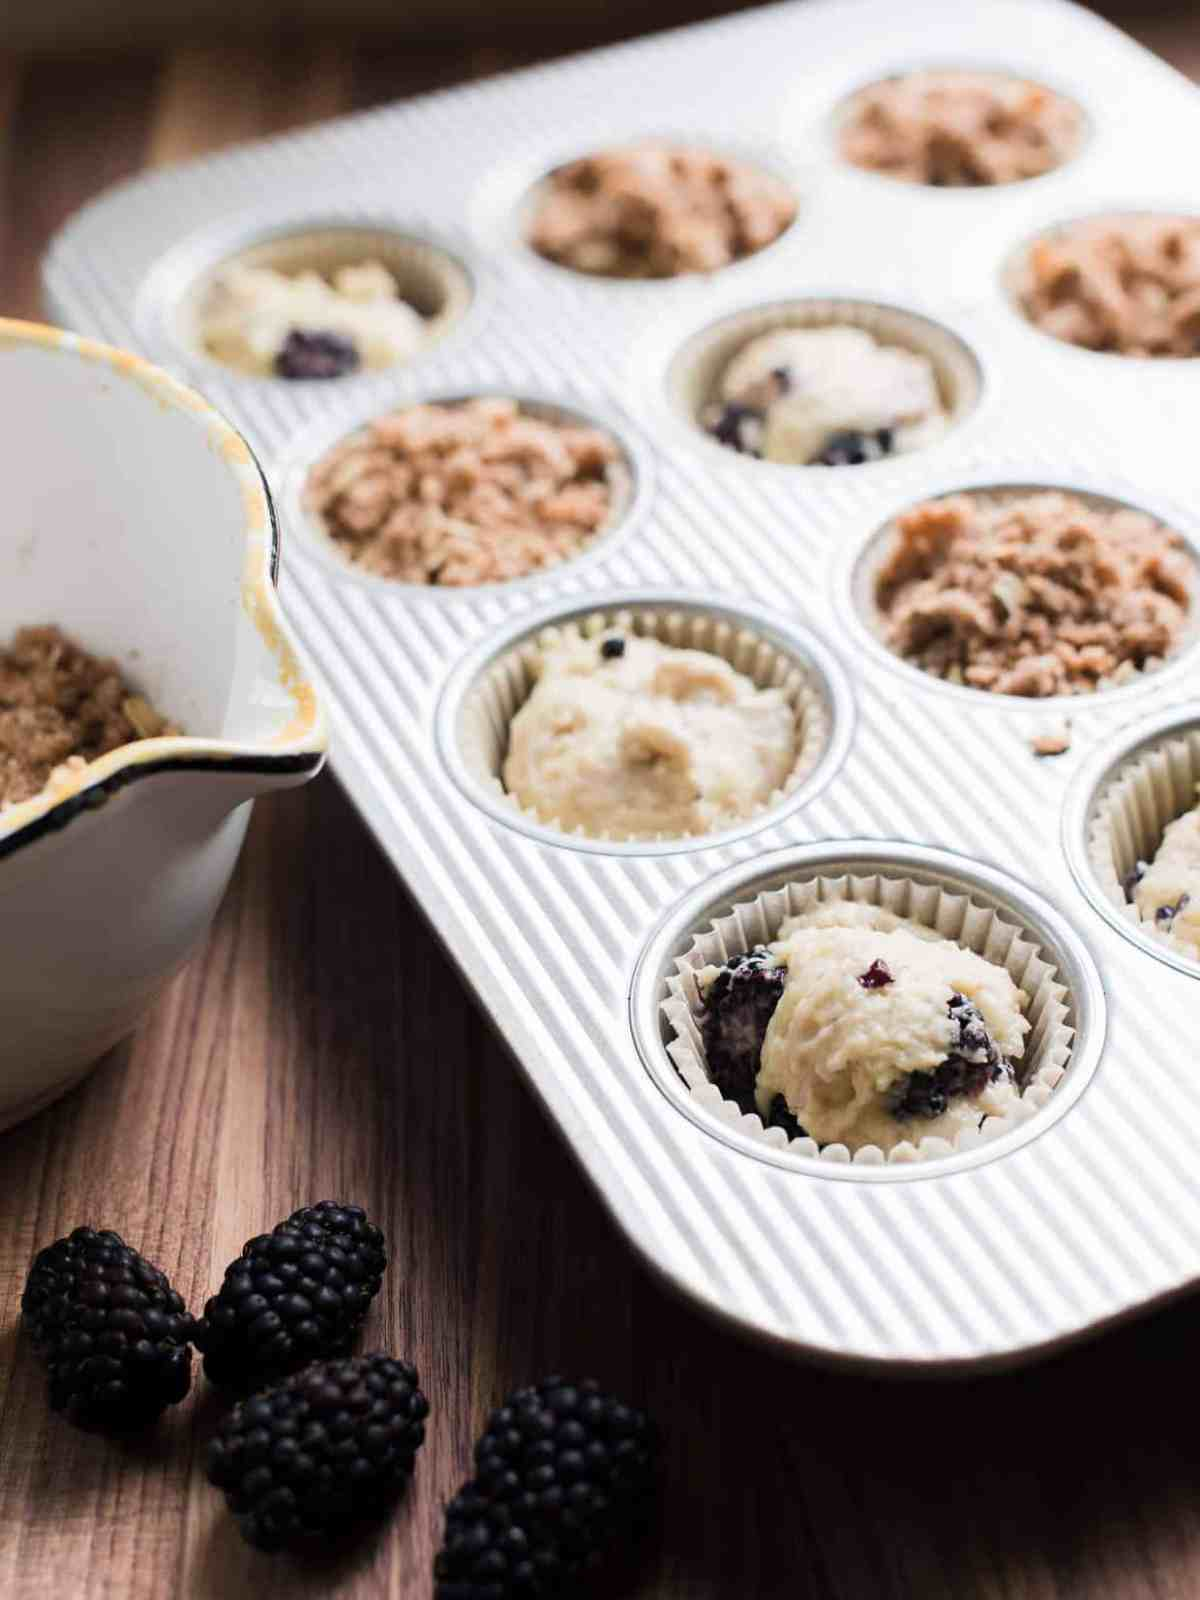 Muffin tin filled with Blackberry Yogurt Muffins ready to be baked.